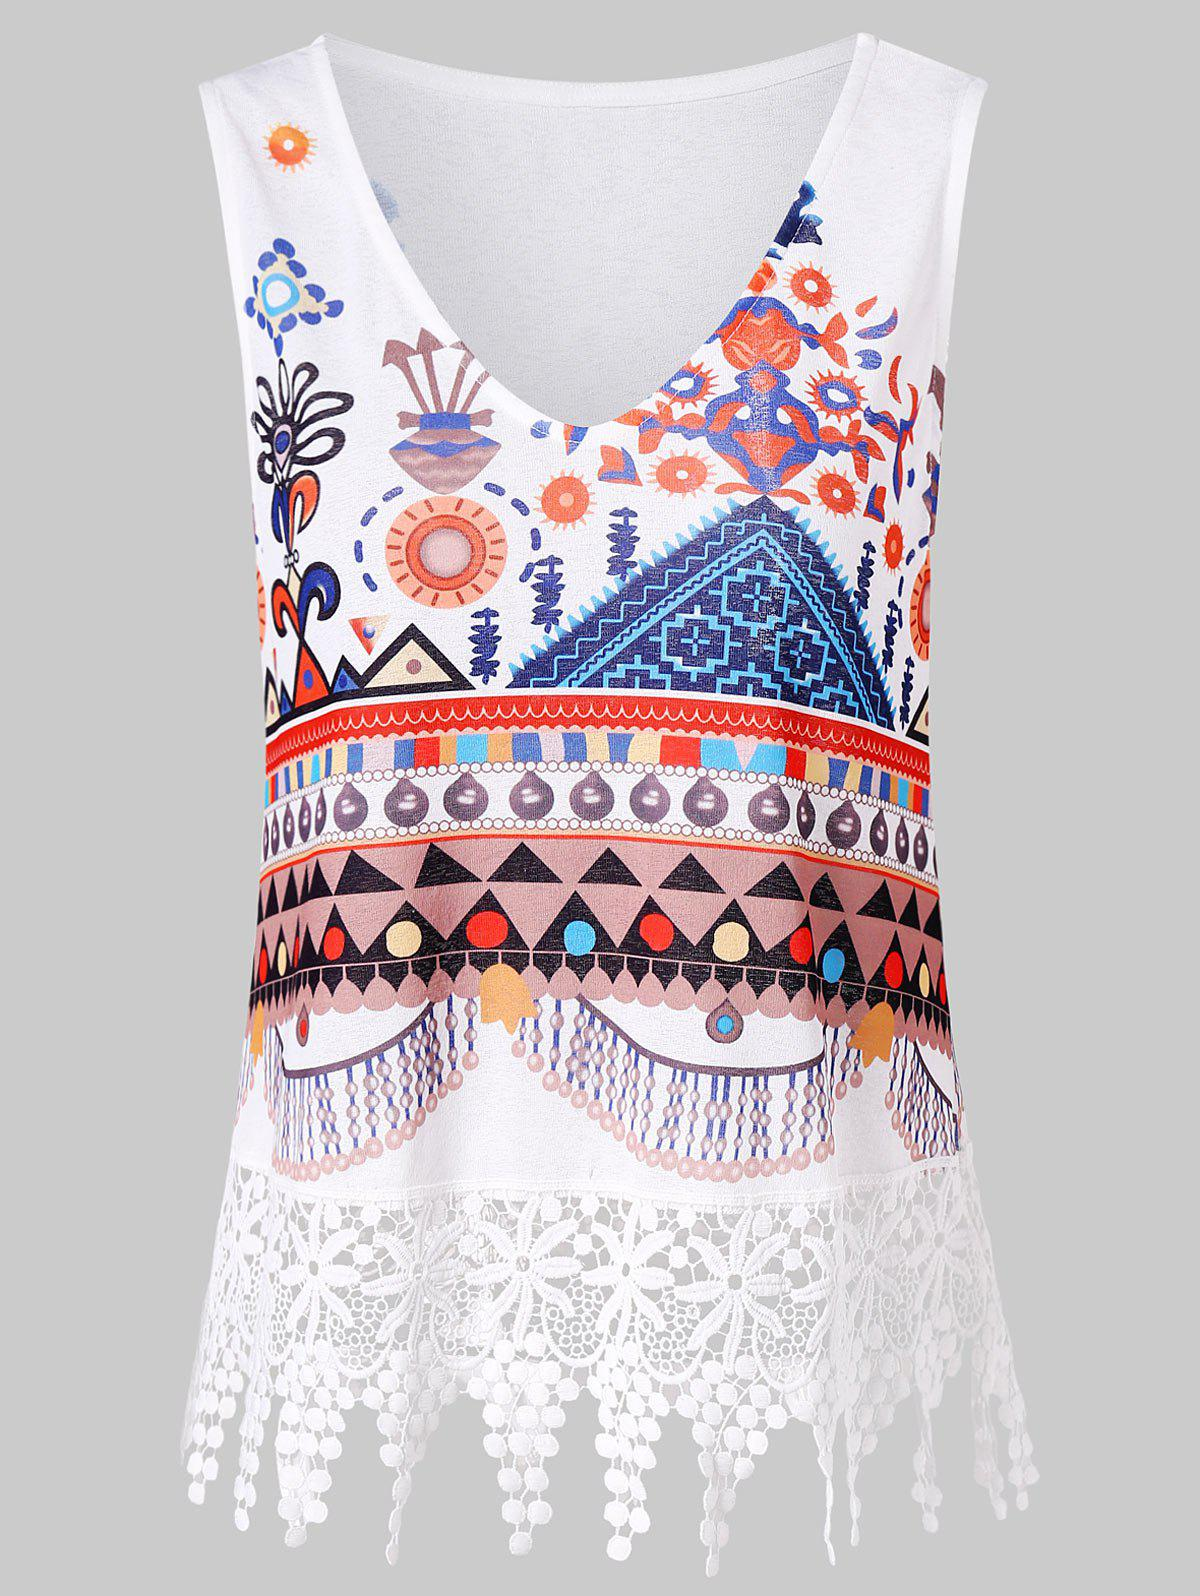 Tribal Print Lace Insert Tank Top free shipping 10pcs lot spp11n60c3 11n60c3 to 220 n channel new original